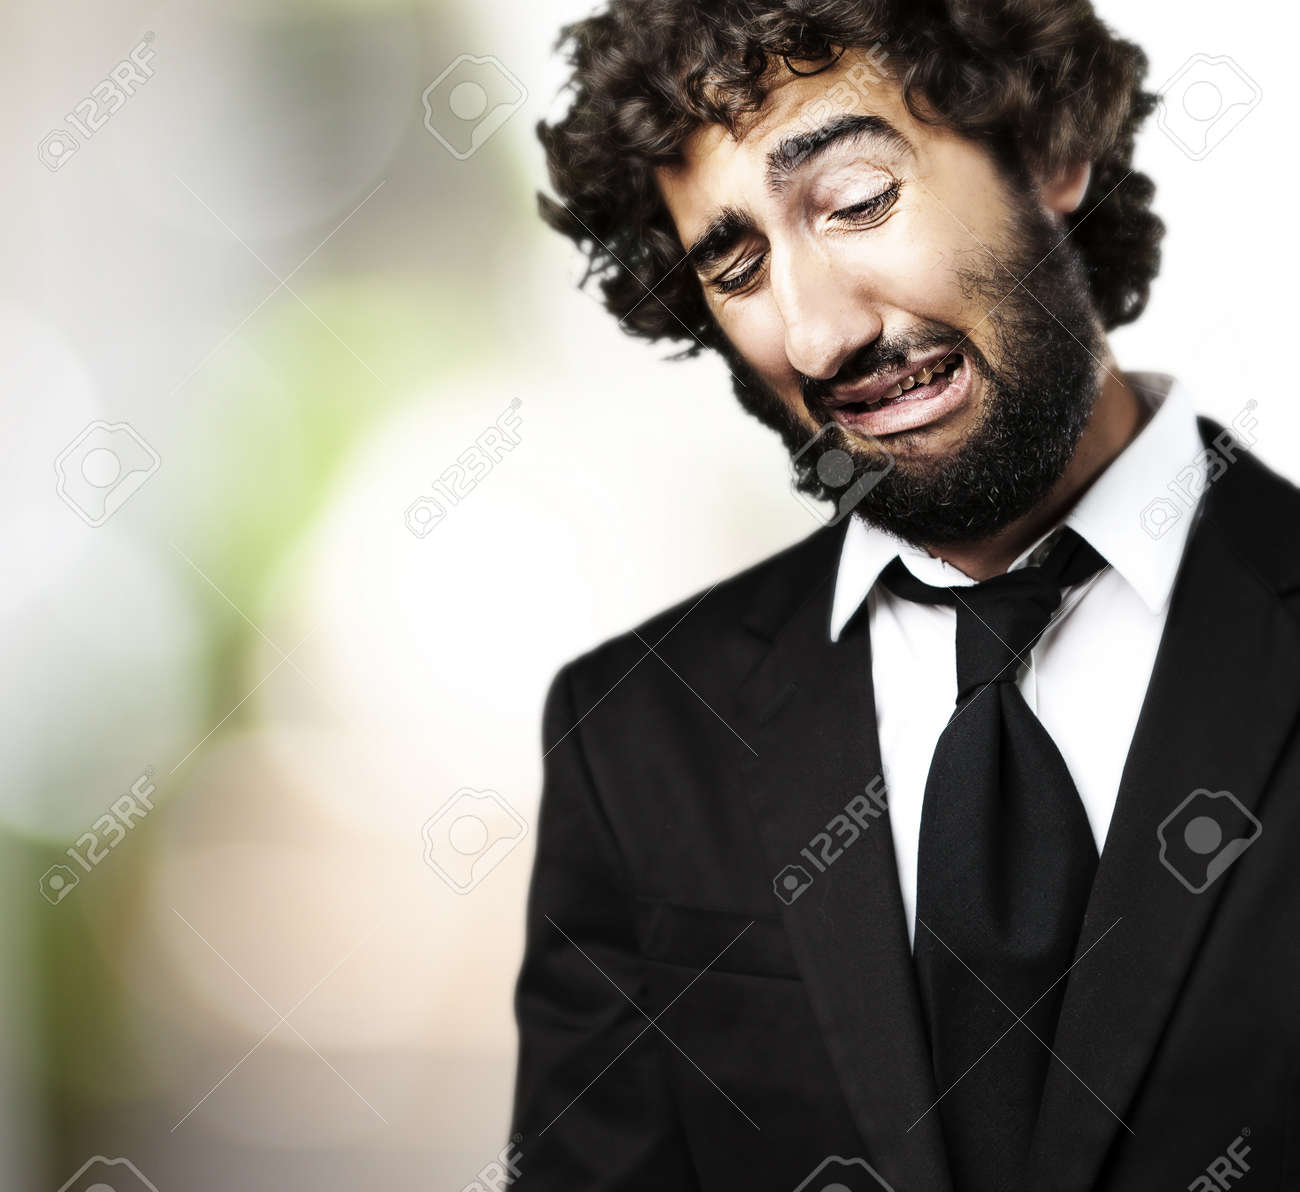 portrait of young business man with suit crying against a plants background Stock Photo - 11497108